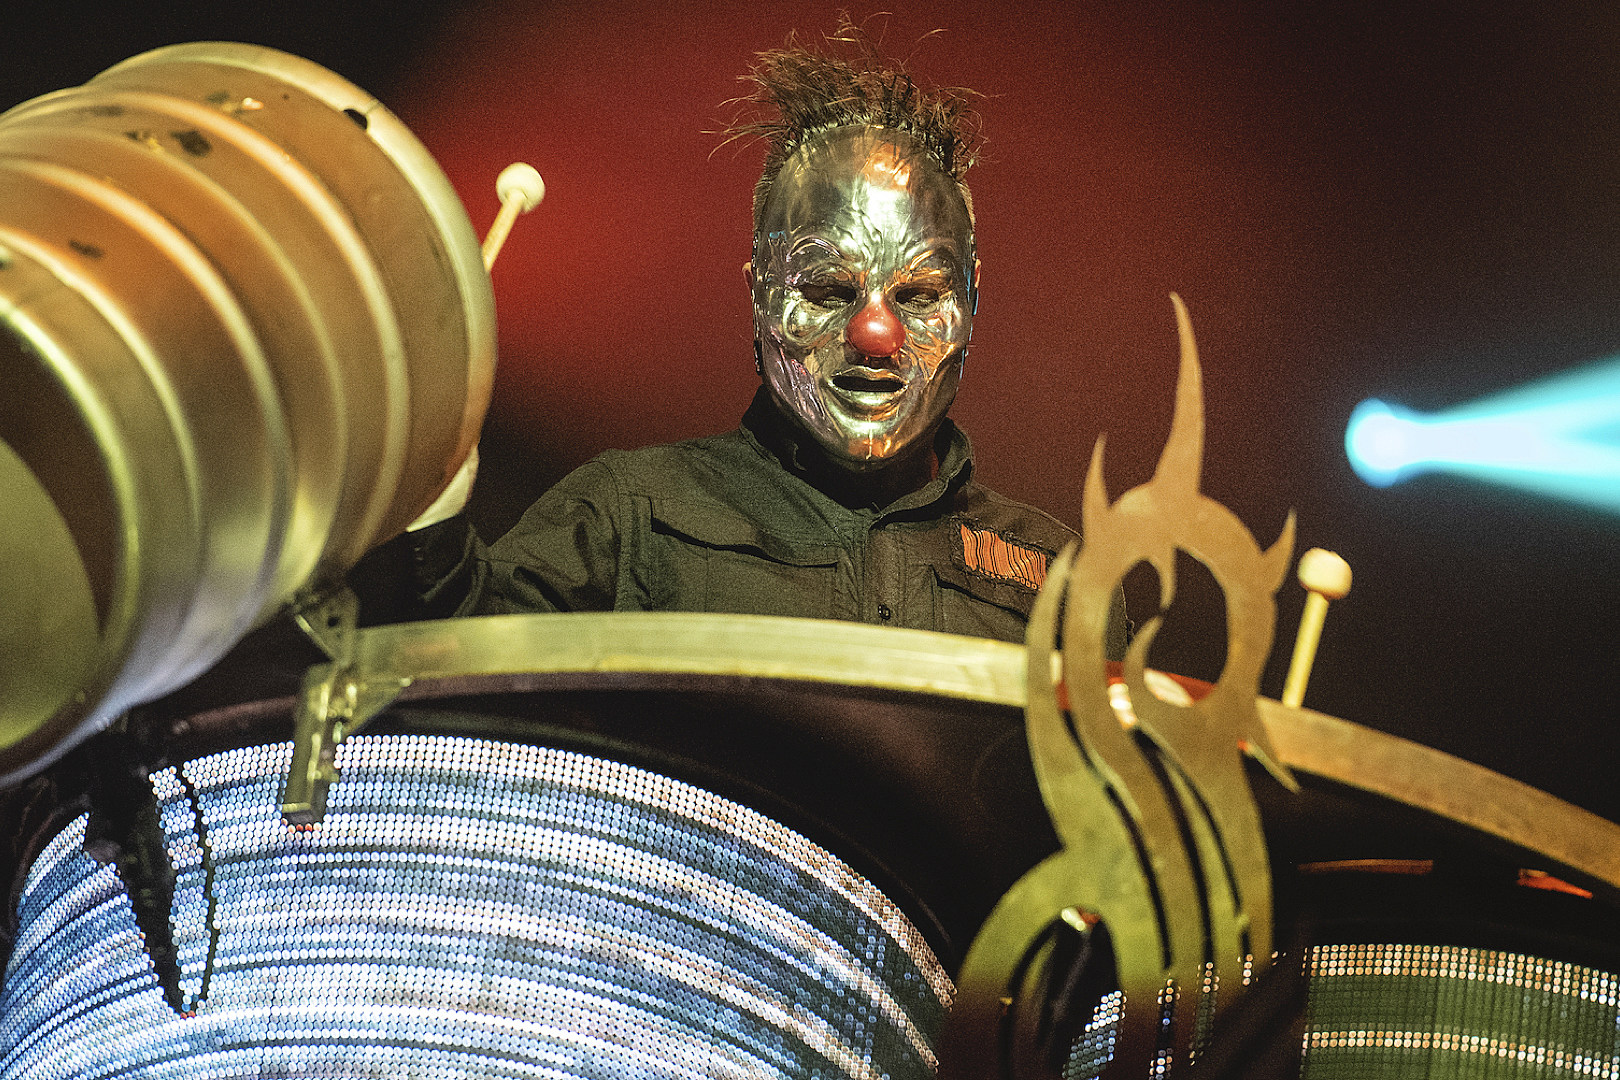 Slipknot: Limited Edition Whiskey Box Set With Clown's Moonshine